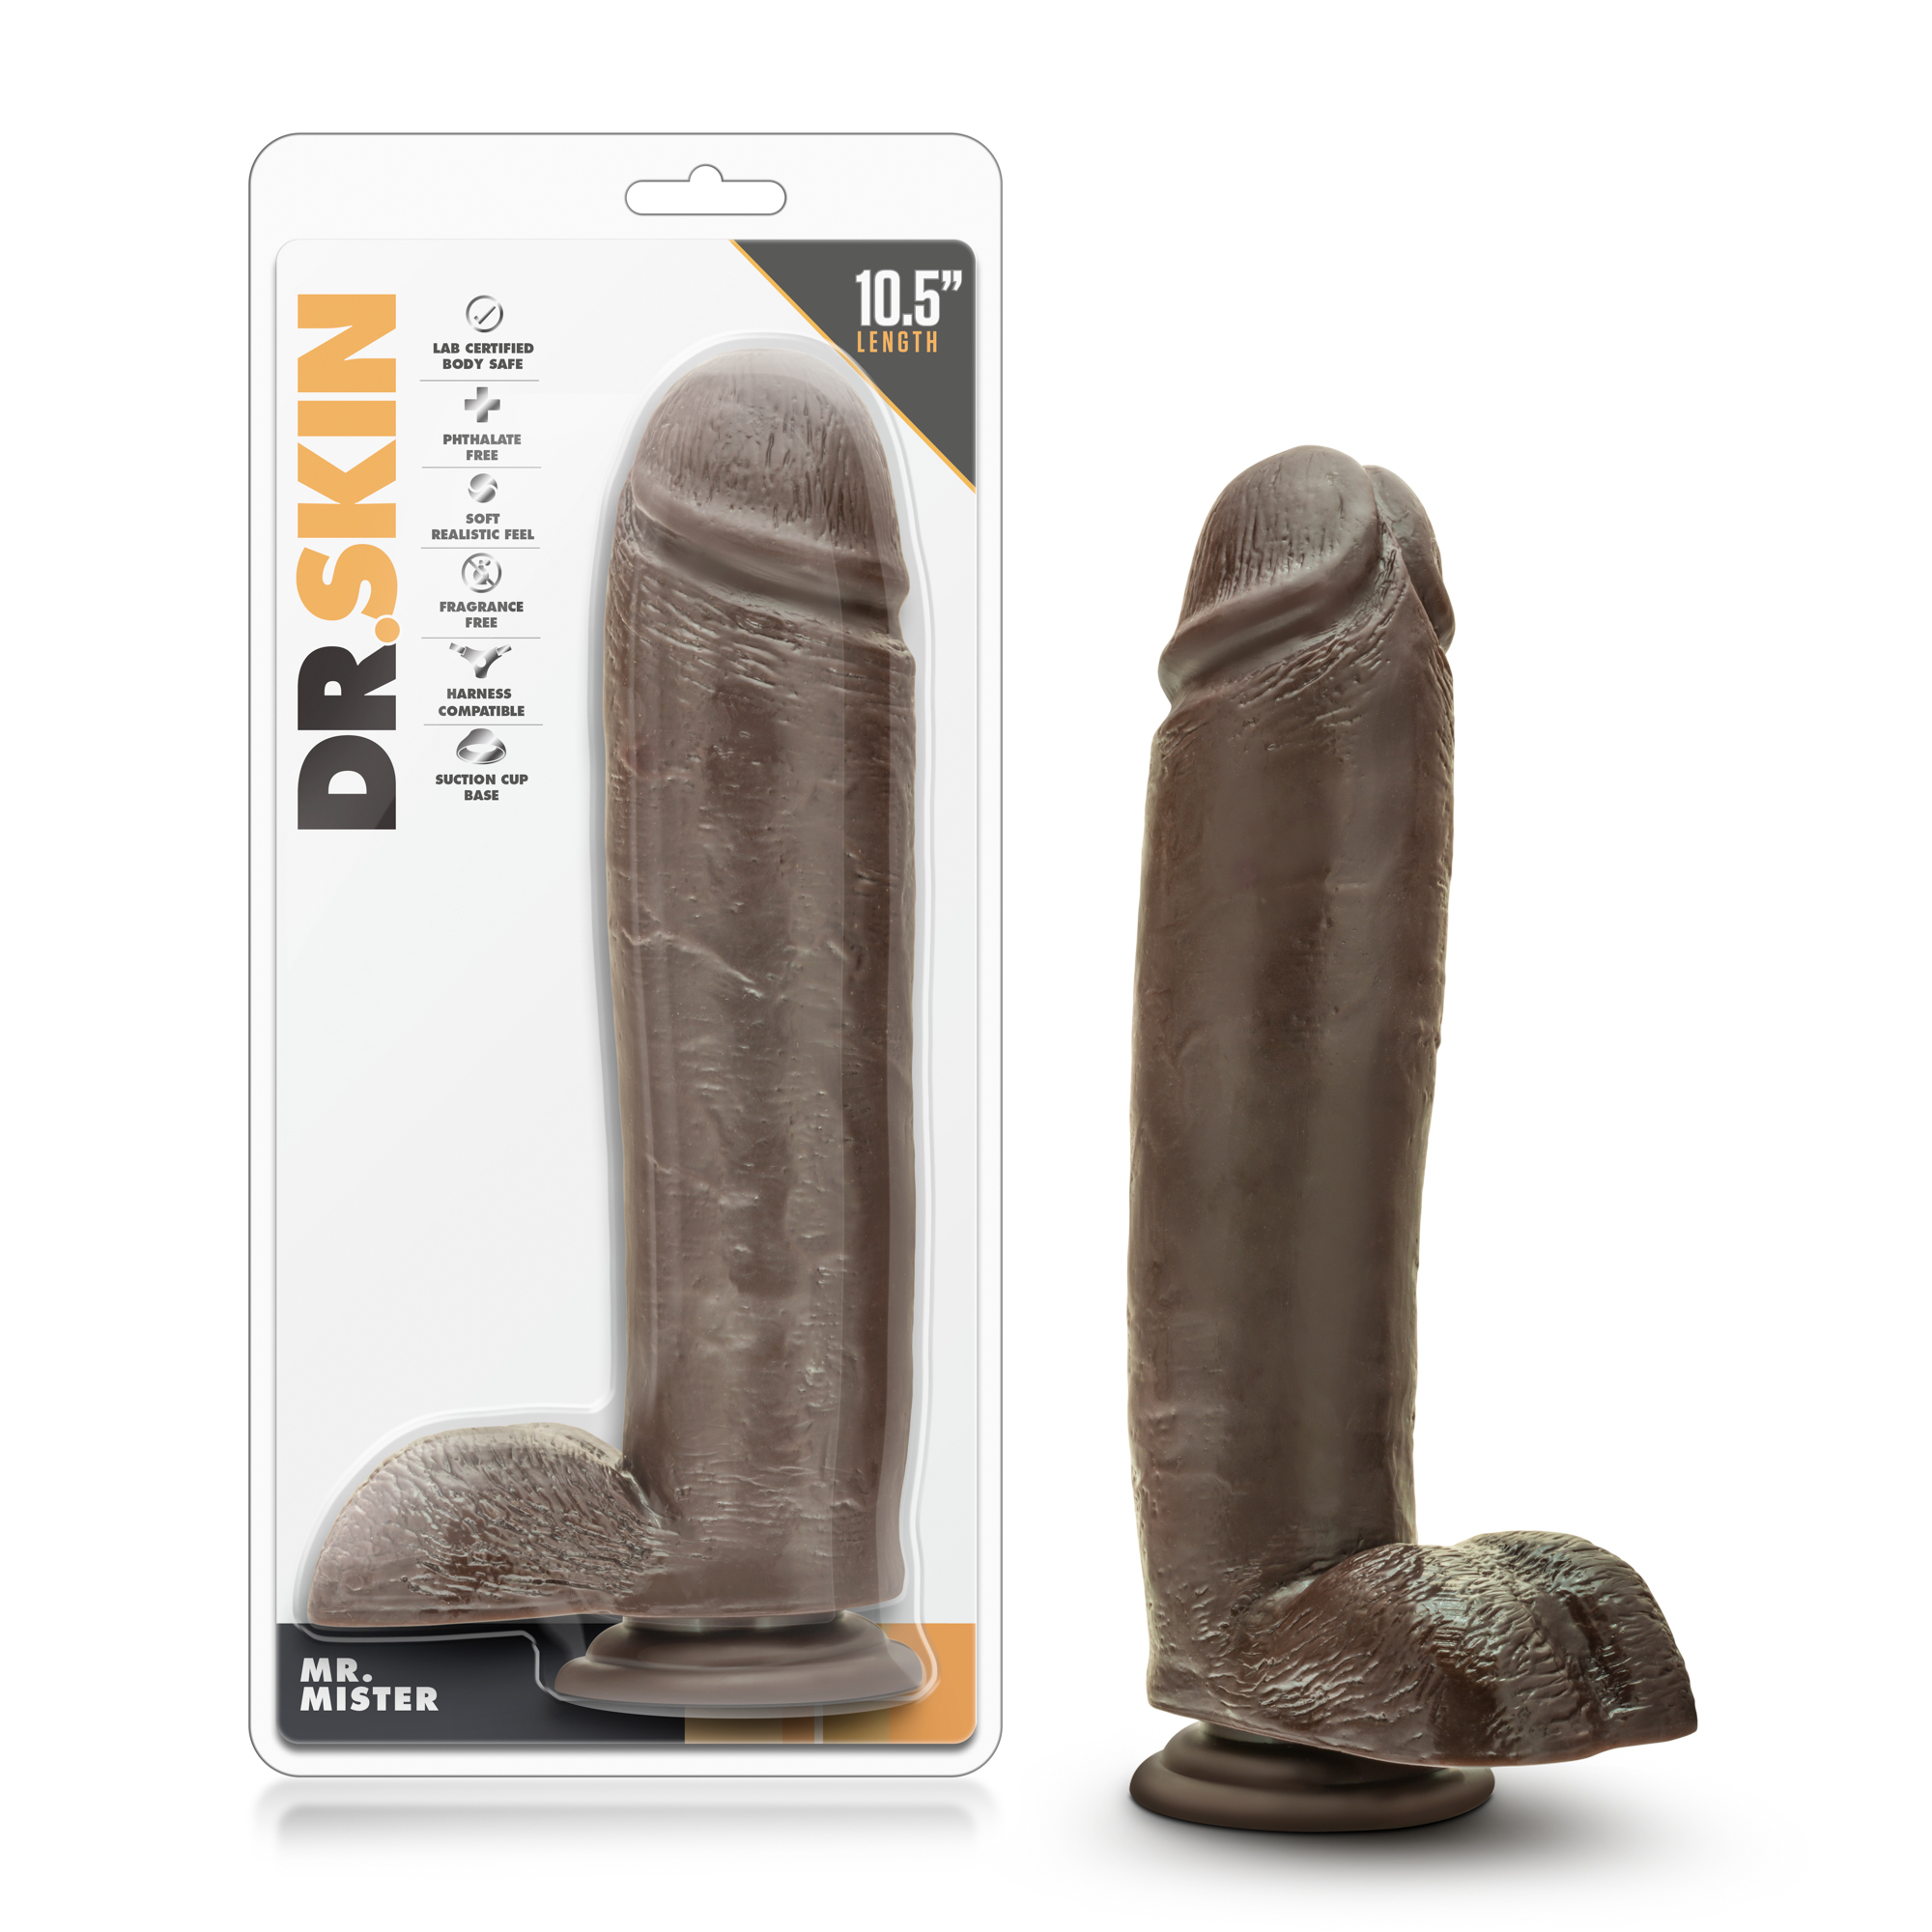 Dr. Skin - Mr. Mister 10.5 Inch Dildo with Suction  - Chocolate